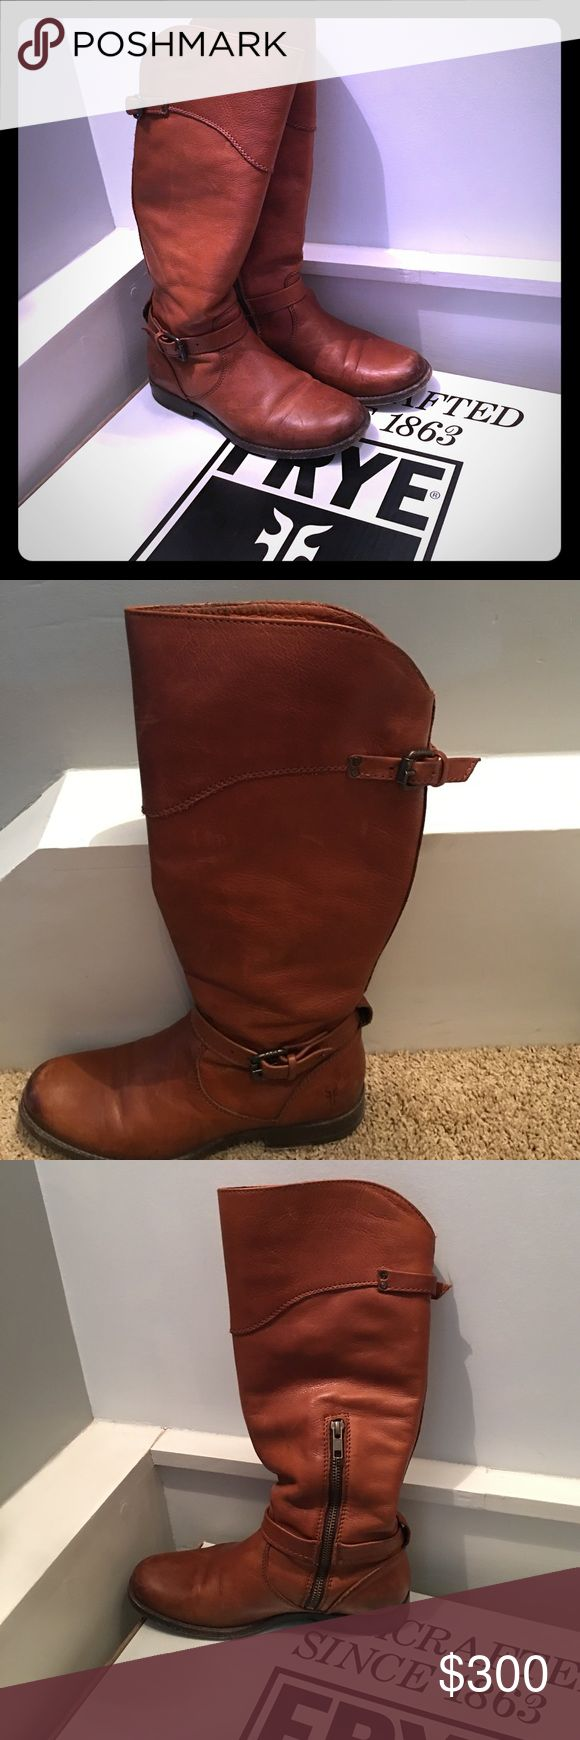 Leather Frye riding boots Purchased about 3 months ago and only worn a few times! These are whiskey colored 7.5 M leather riding boots. Will be shipped in original box! Frye Shoes Winter & Rain Boots